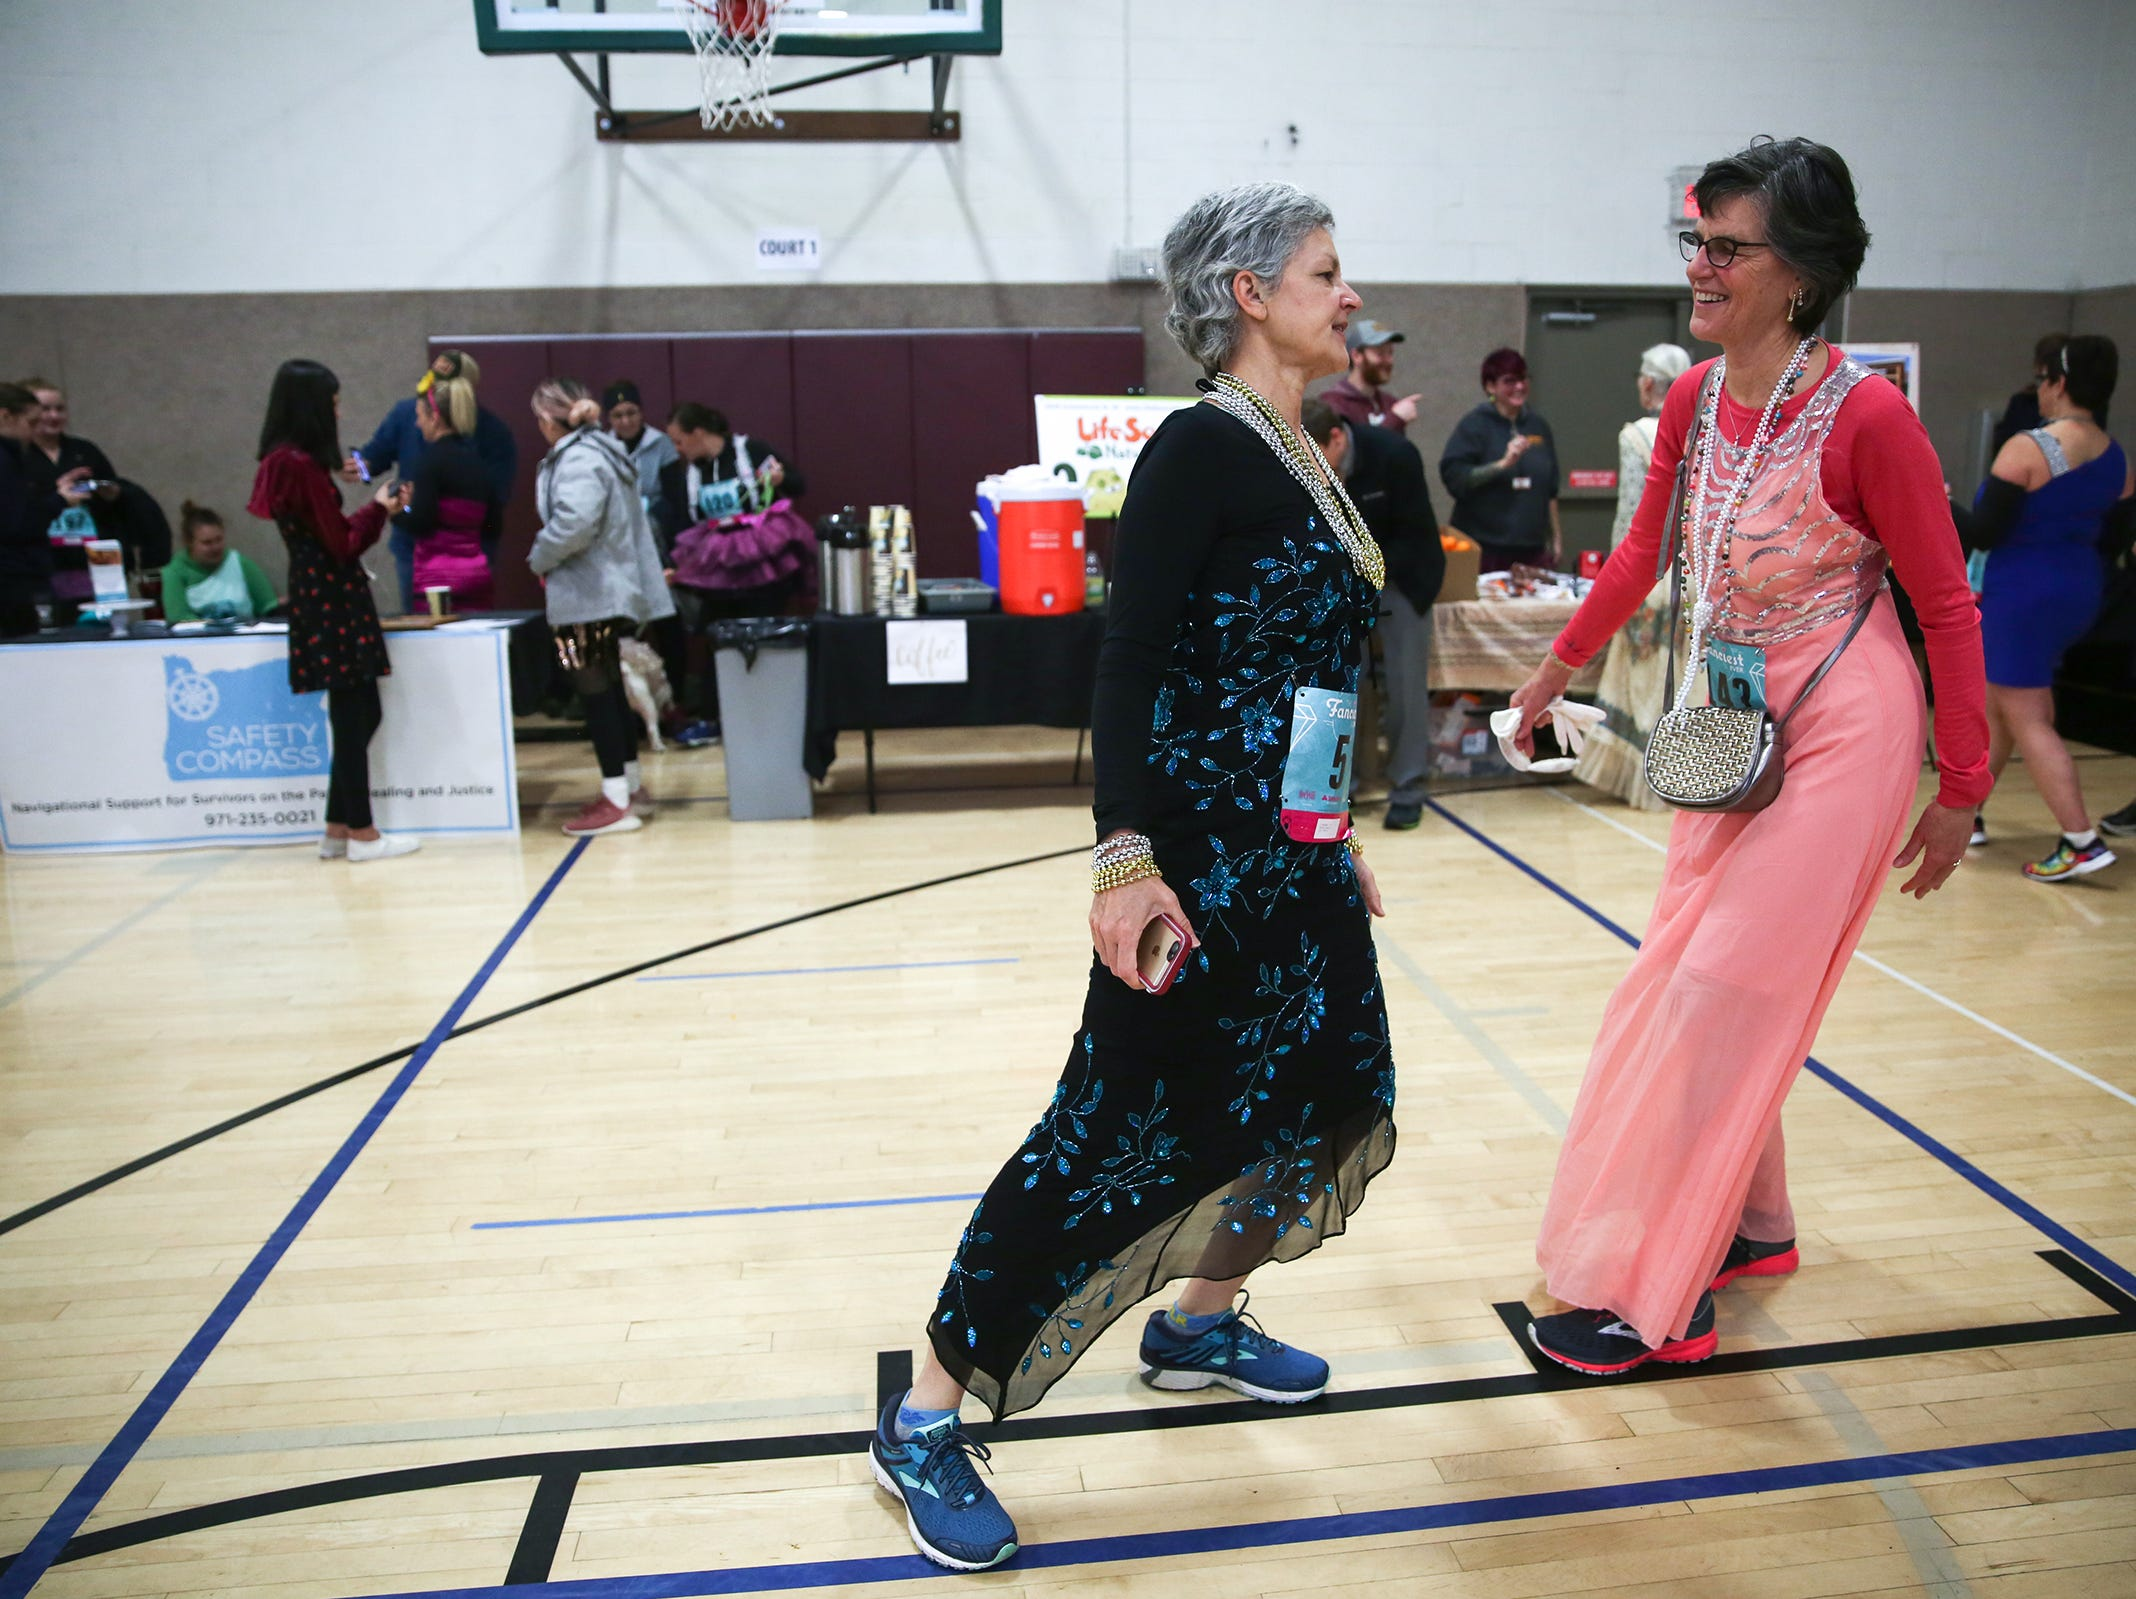 Sisters Susanne Bailey (left) and Marry Schmidgall (right) stretch before The Fanciest 5K. Ever. in Salem on Saturday, Dec. 29. All of the money raised will go directly to advocacy for sex-trafficking survivors in the mid-Willamette Valley.